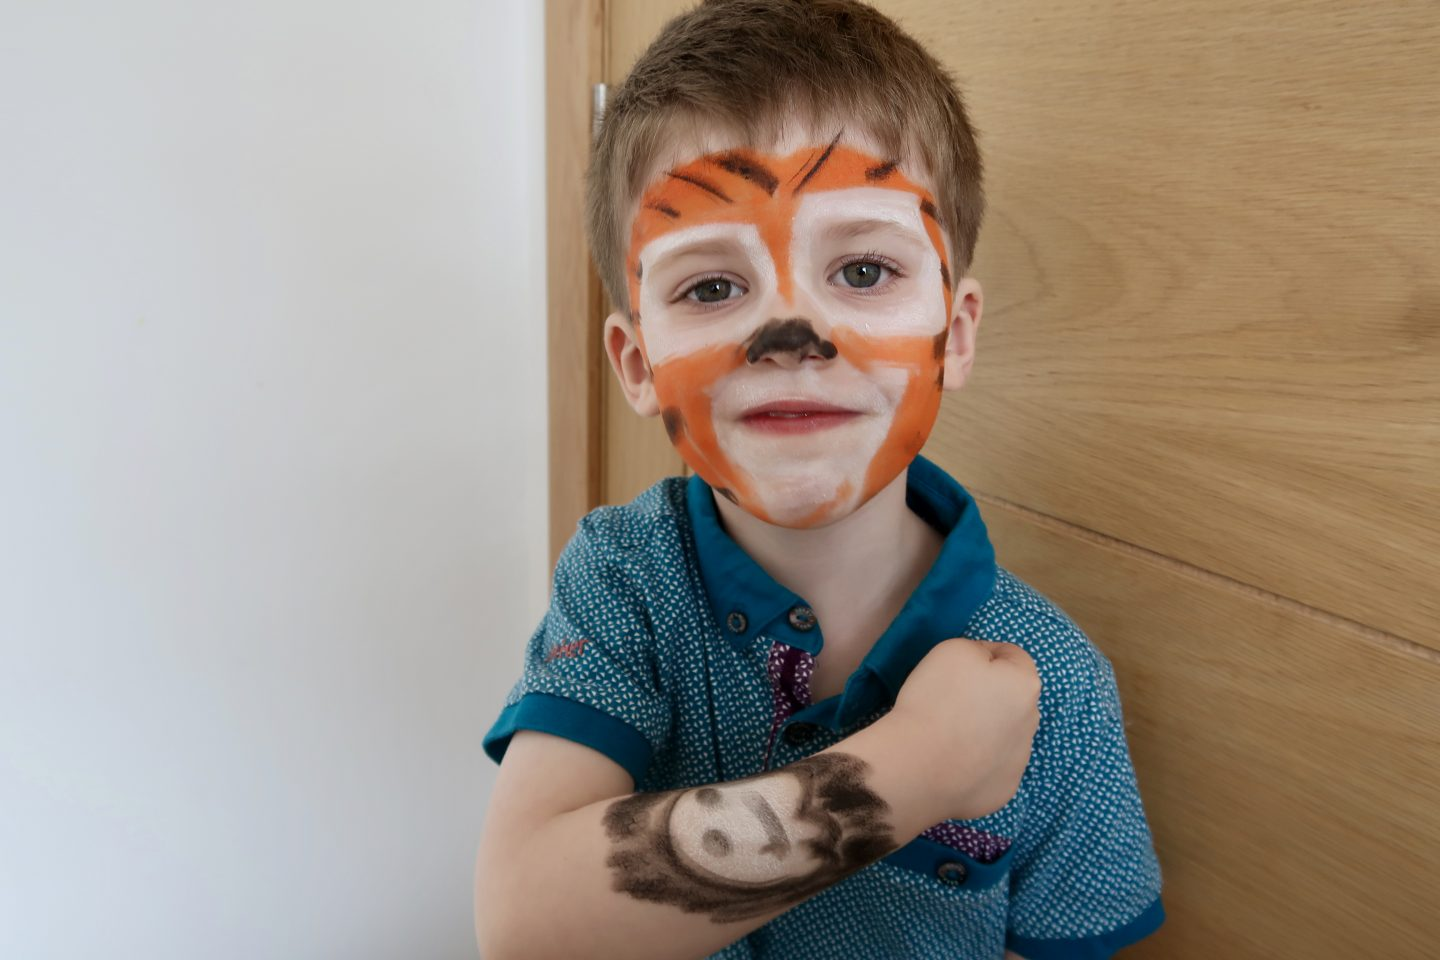 A little boy with his face painted as a tiger and a ghost painted on his arm.